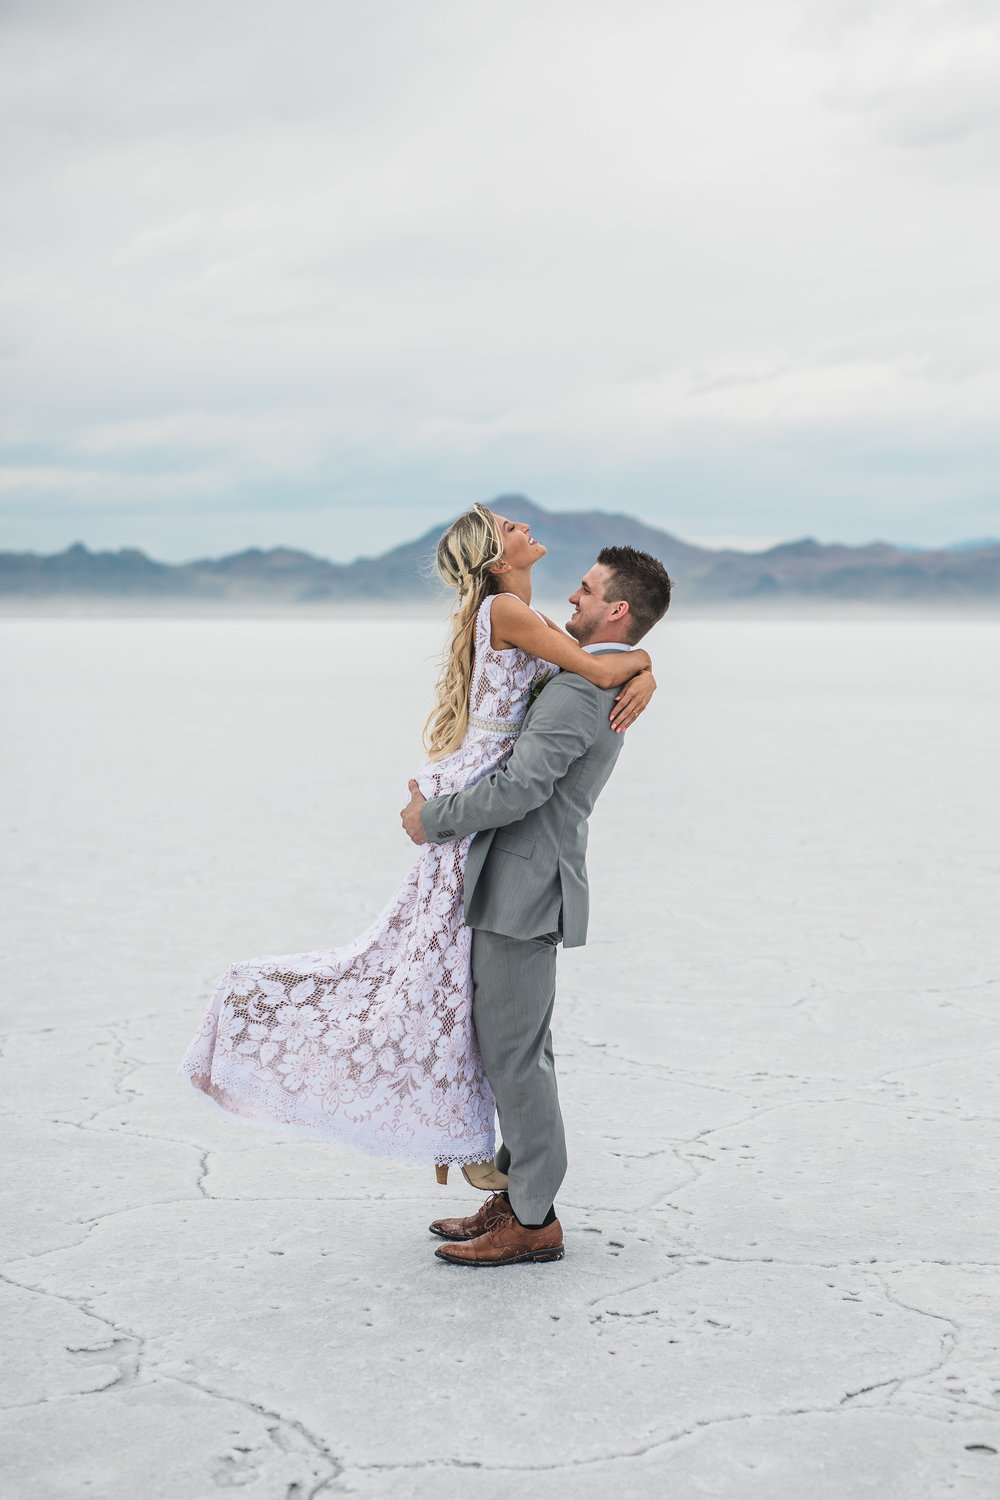 Bonneville Salt Flats adventure elopement Utah wedding photographers